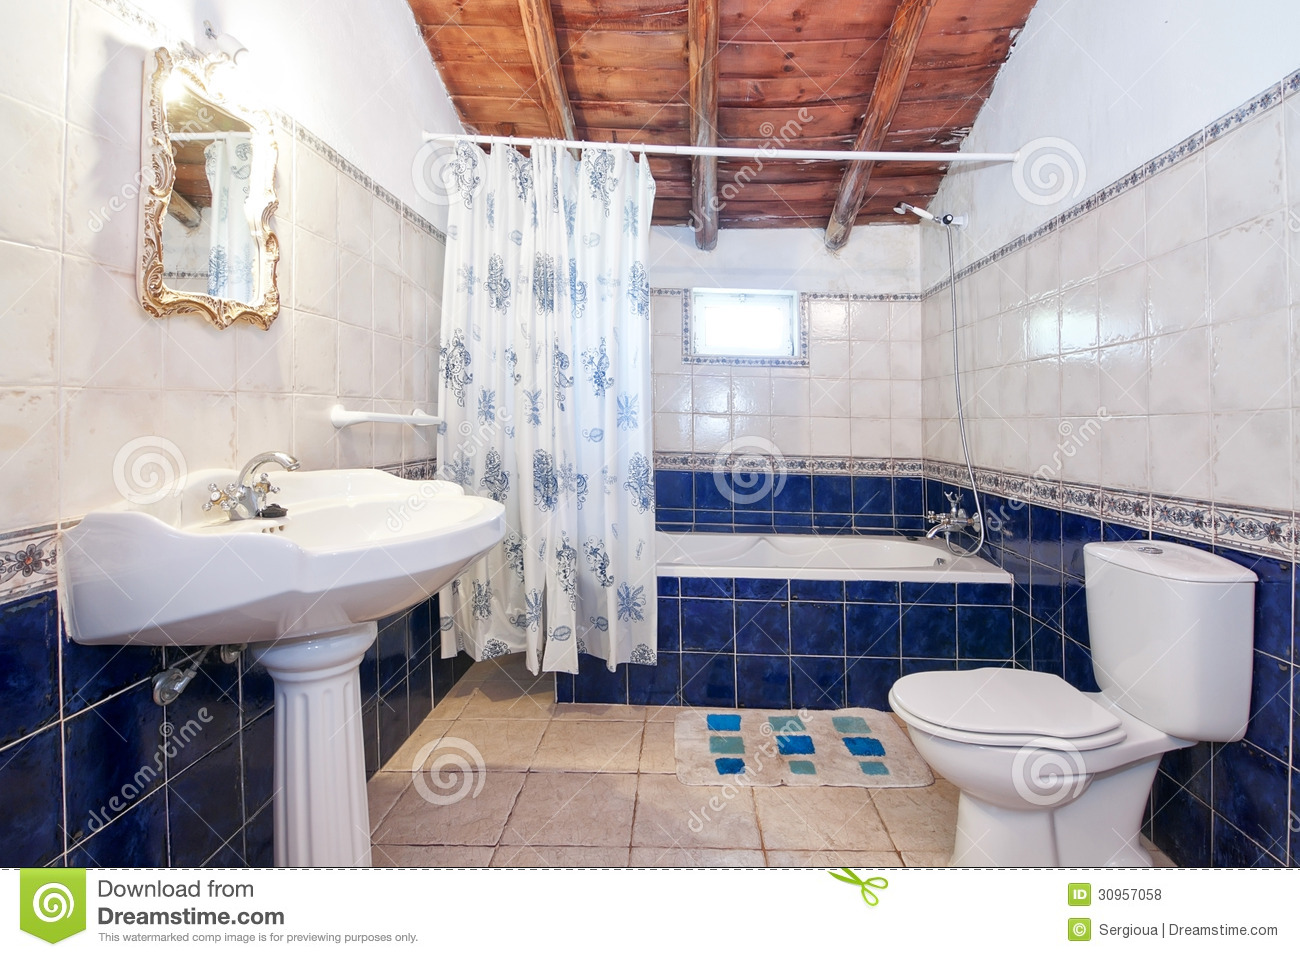 vintage-retro-bathroom-decoration-blue-tiles